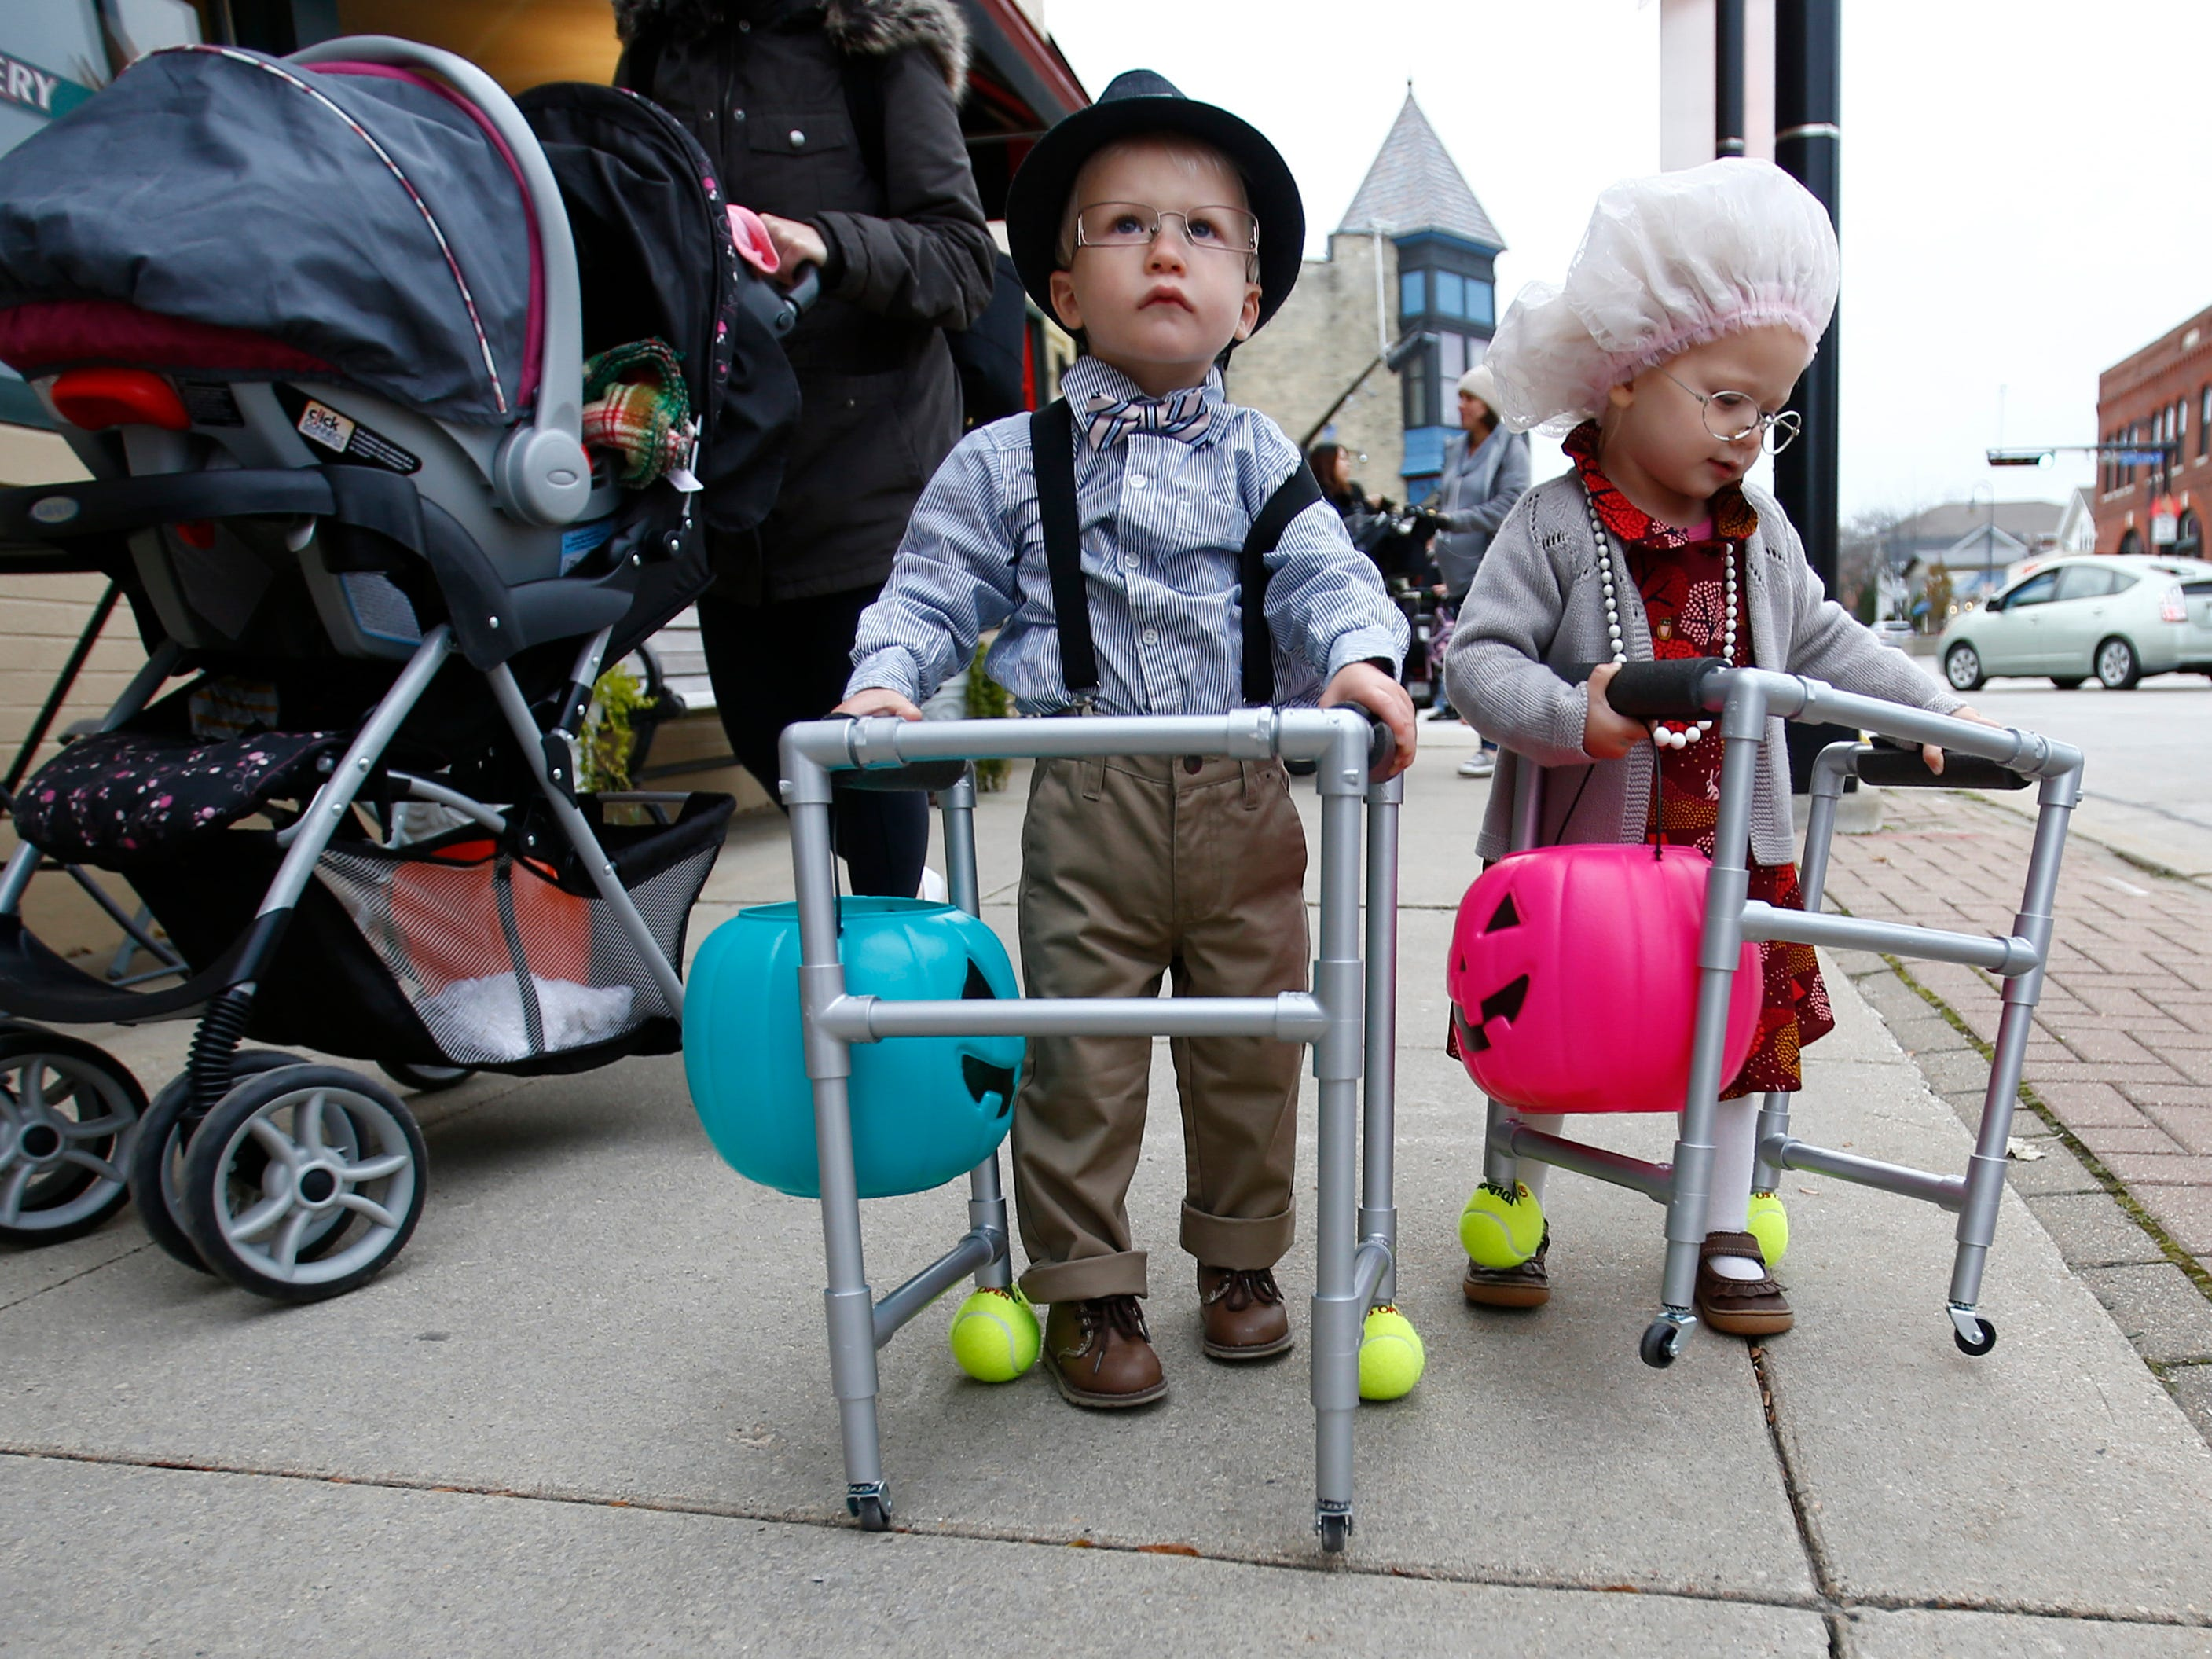 Twins Bennett and Abigail Rottier, 2, slowly make their way along Main Street during the Menomonee Falls Downtown Trick or Treating on Oct. 25.